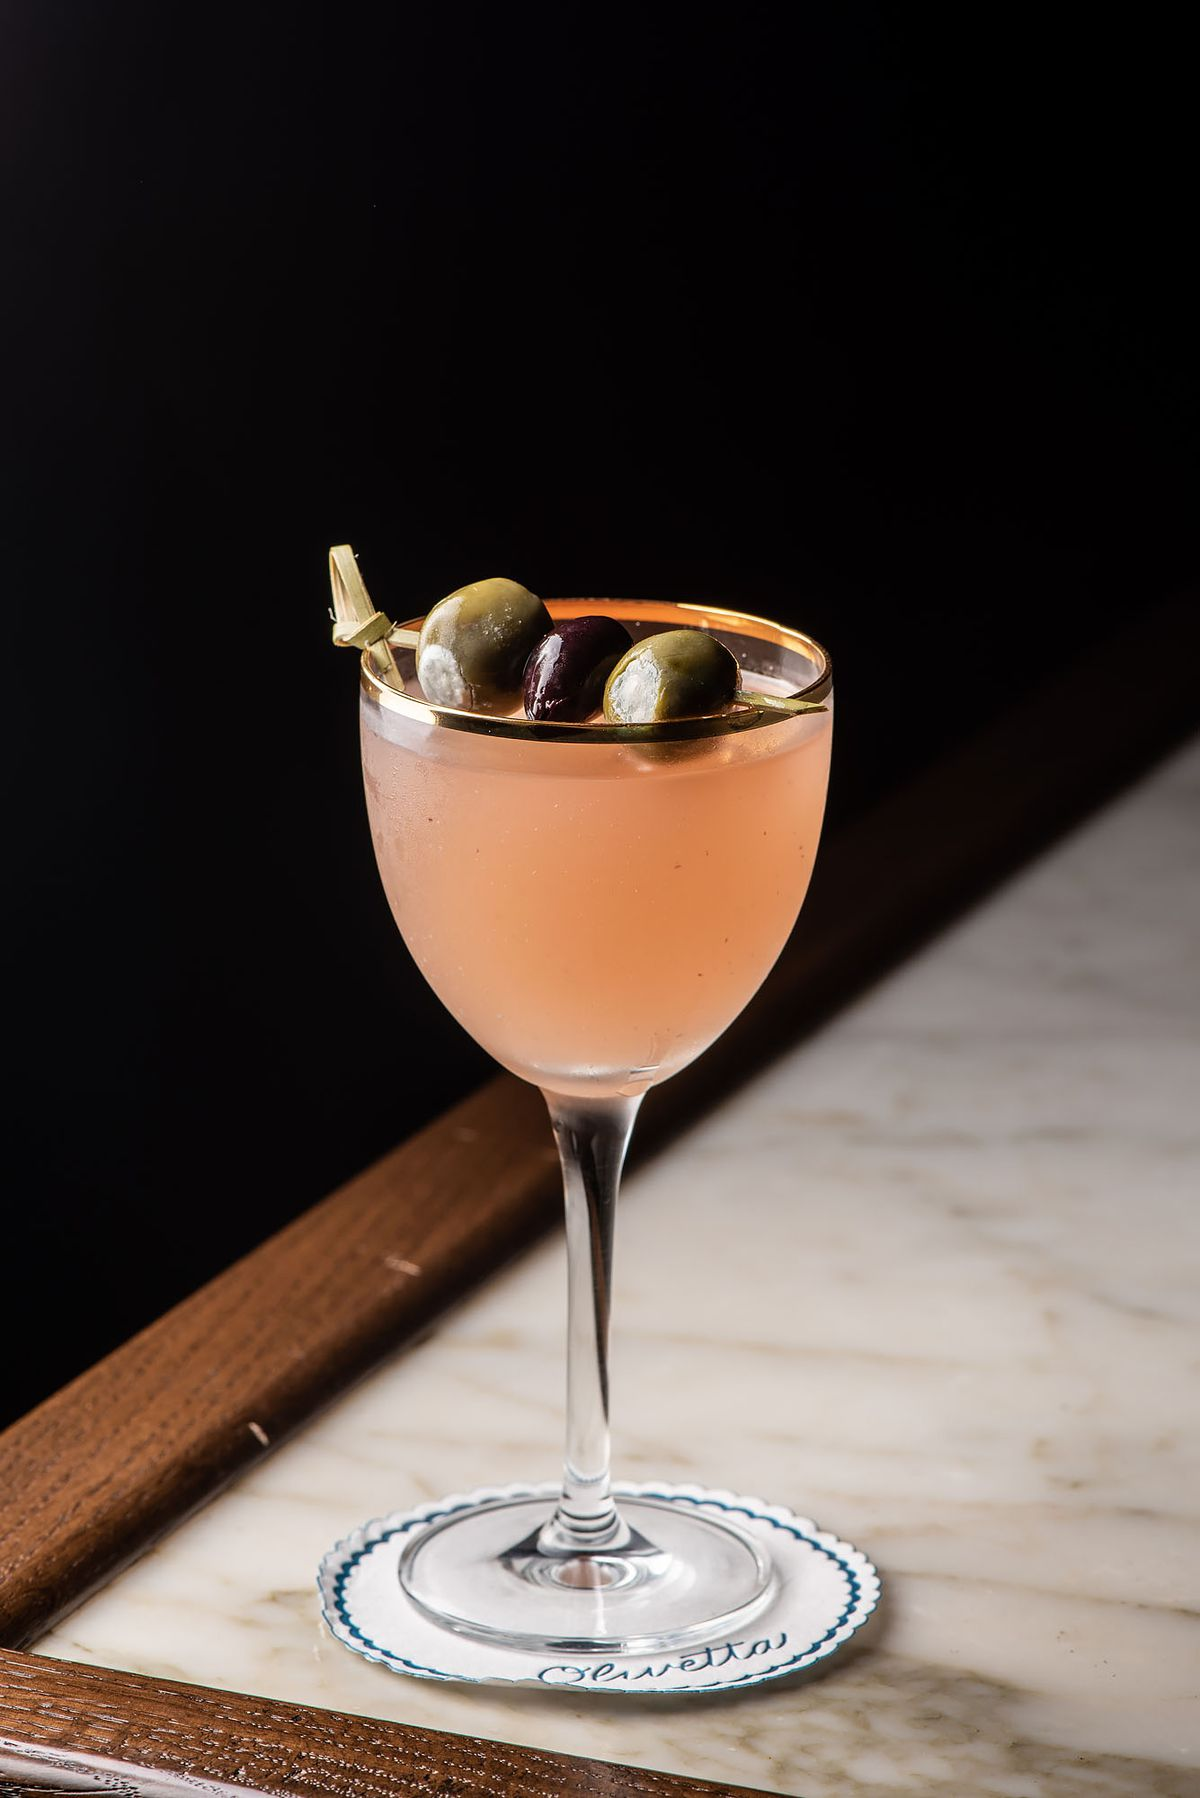 A tall peach cocktail with two olives.